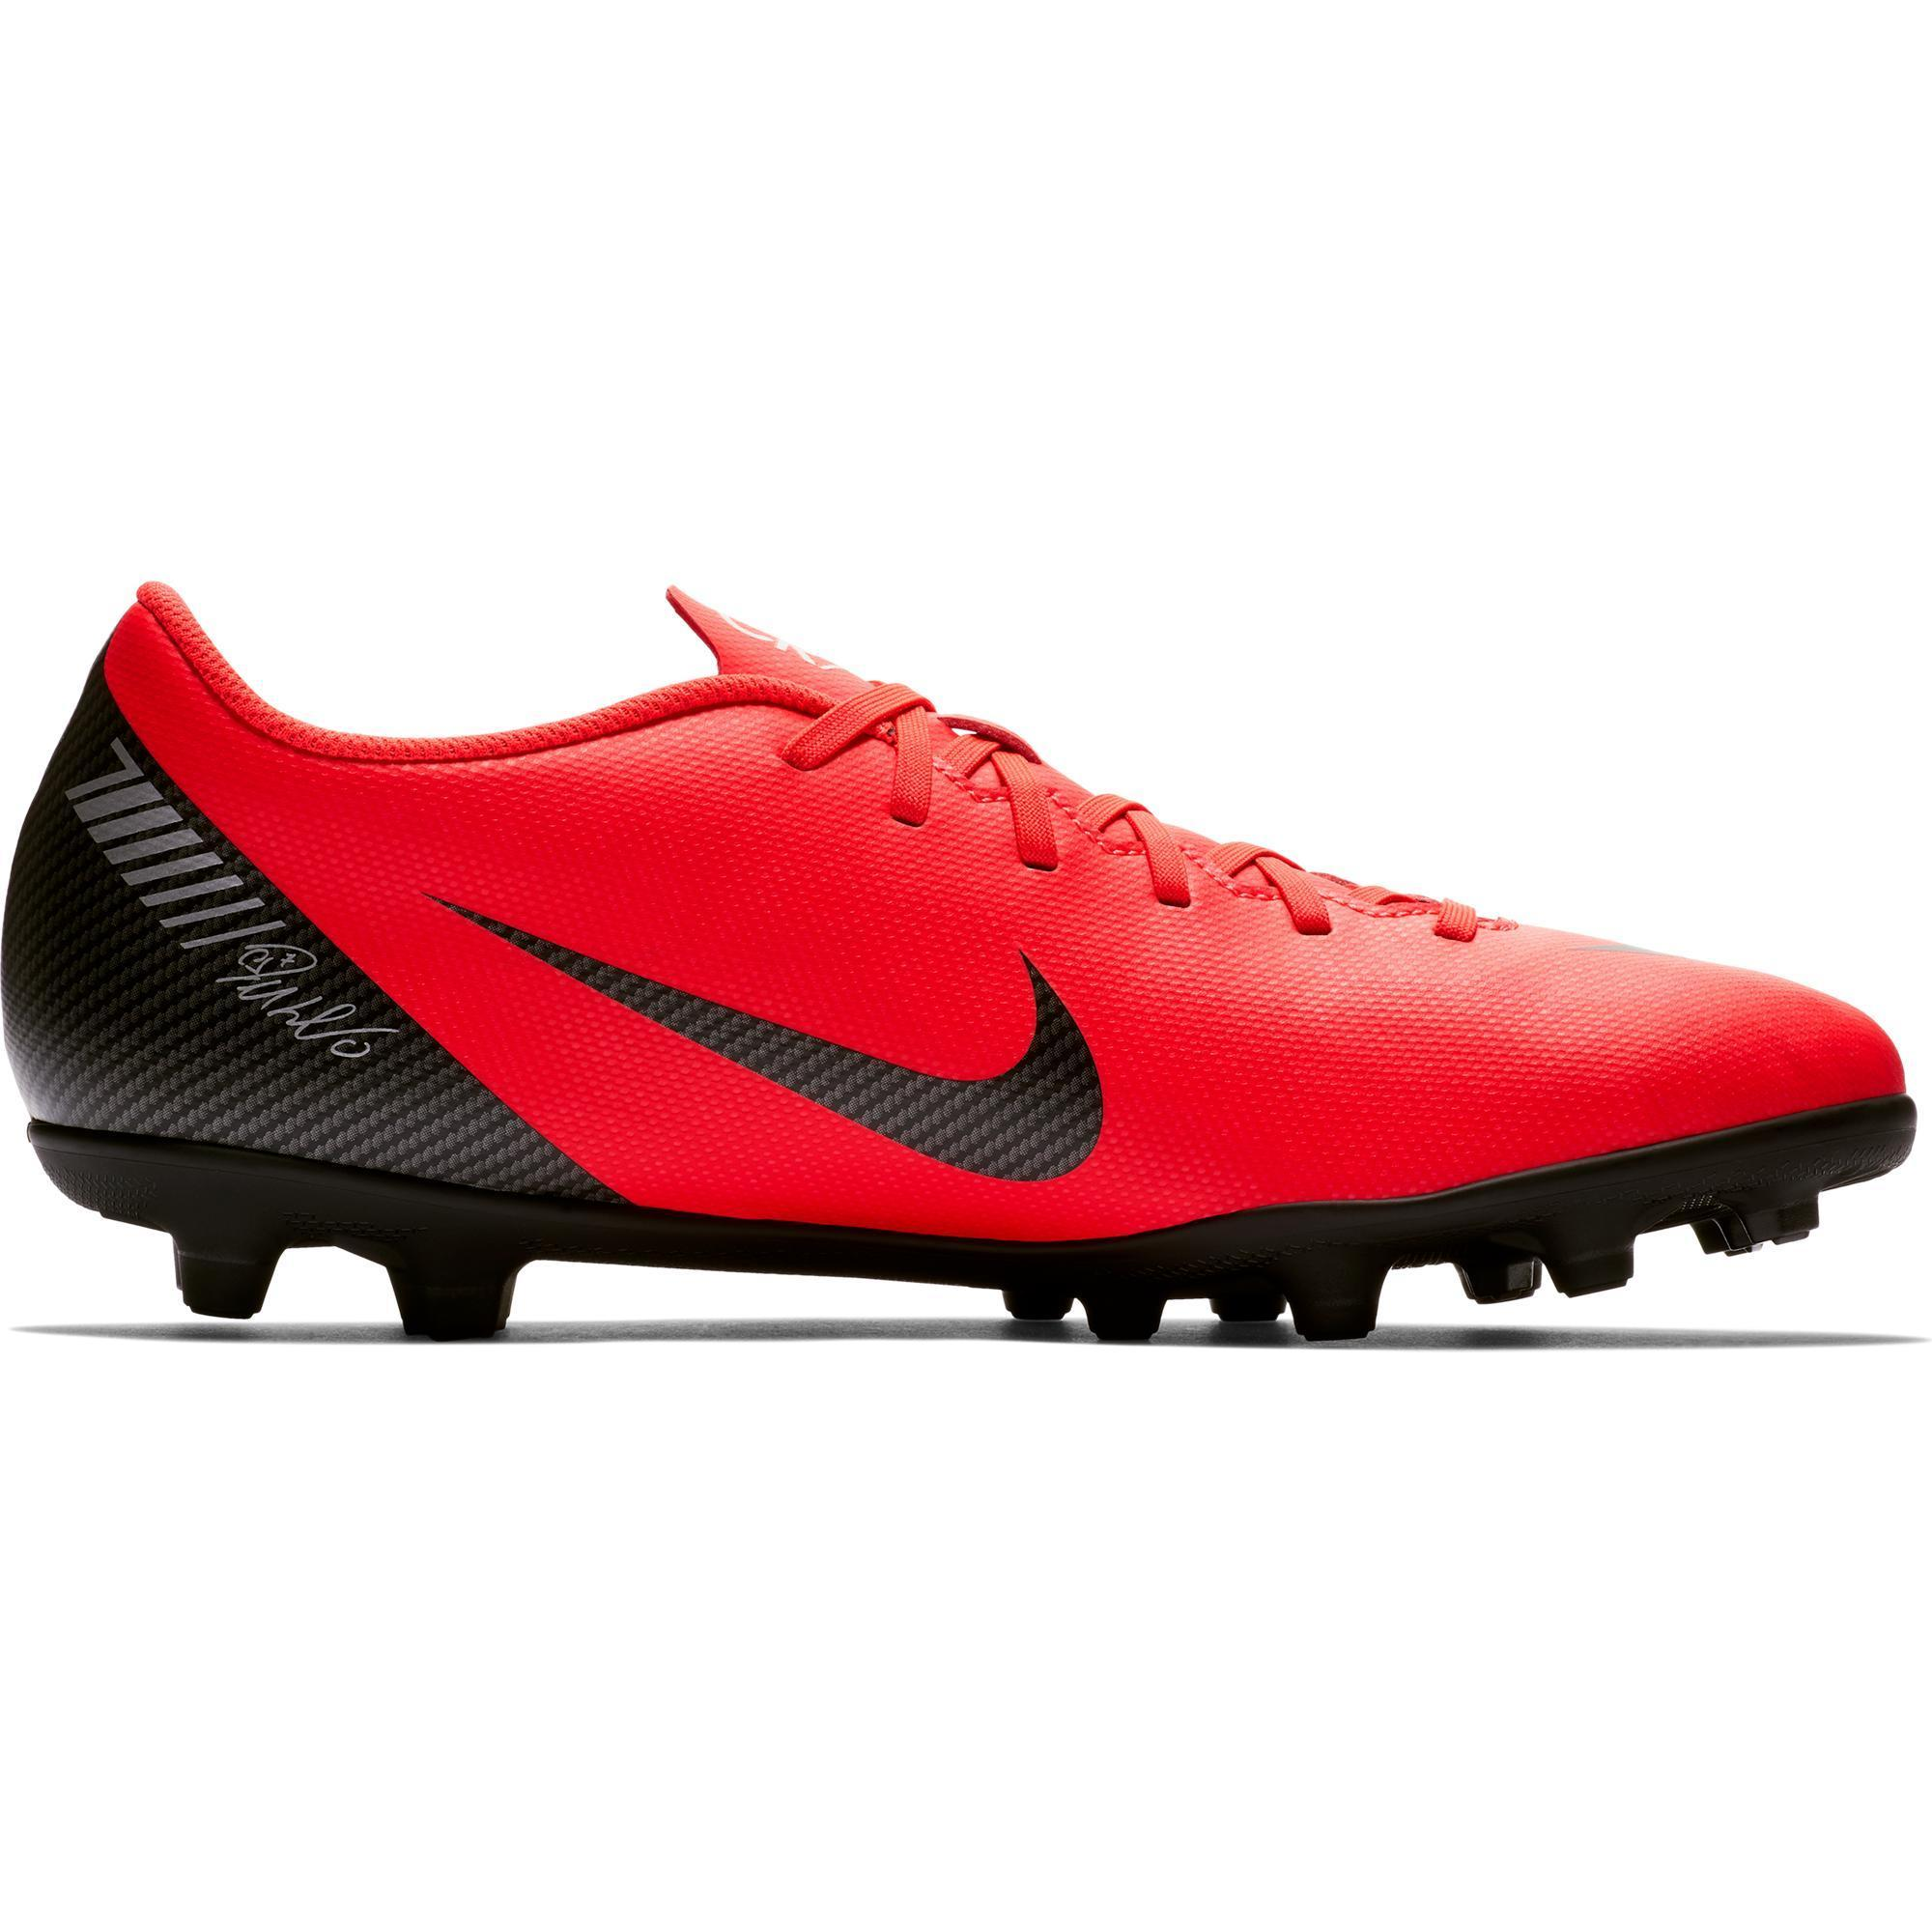 on sale fe4e4 113fb Comprar Botas de Fútbol Adultos y Zapatillas   Decathlon